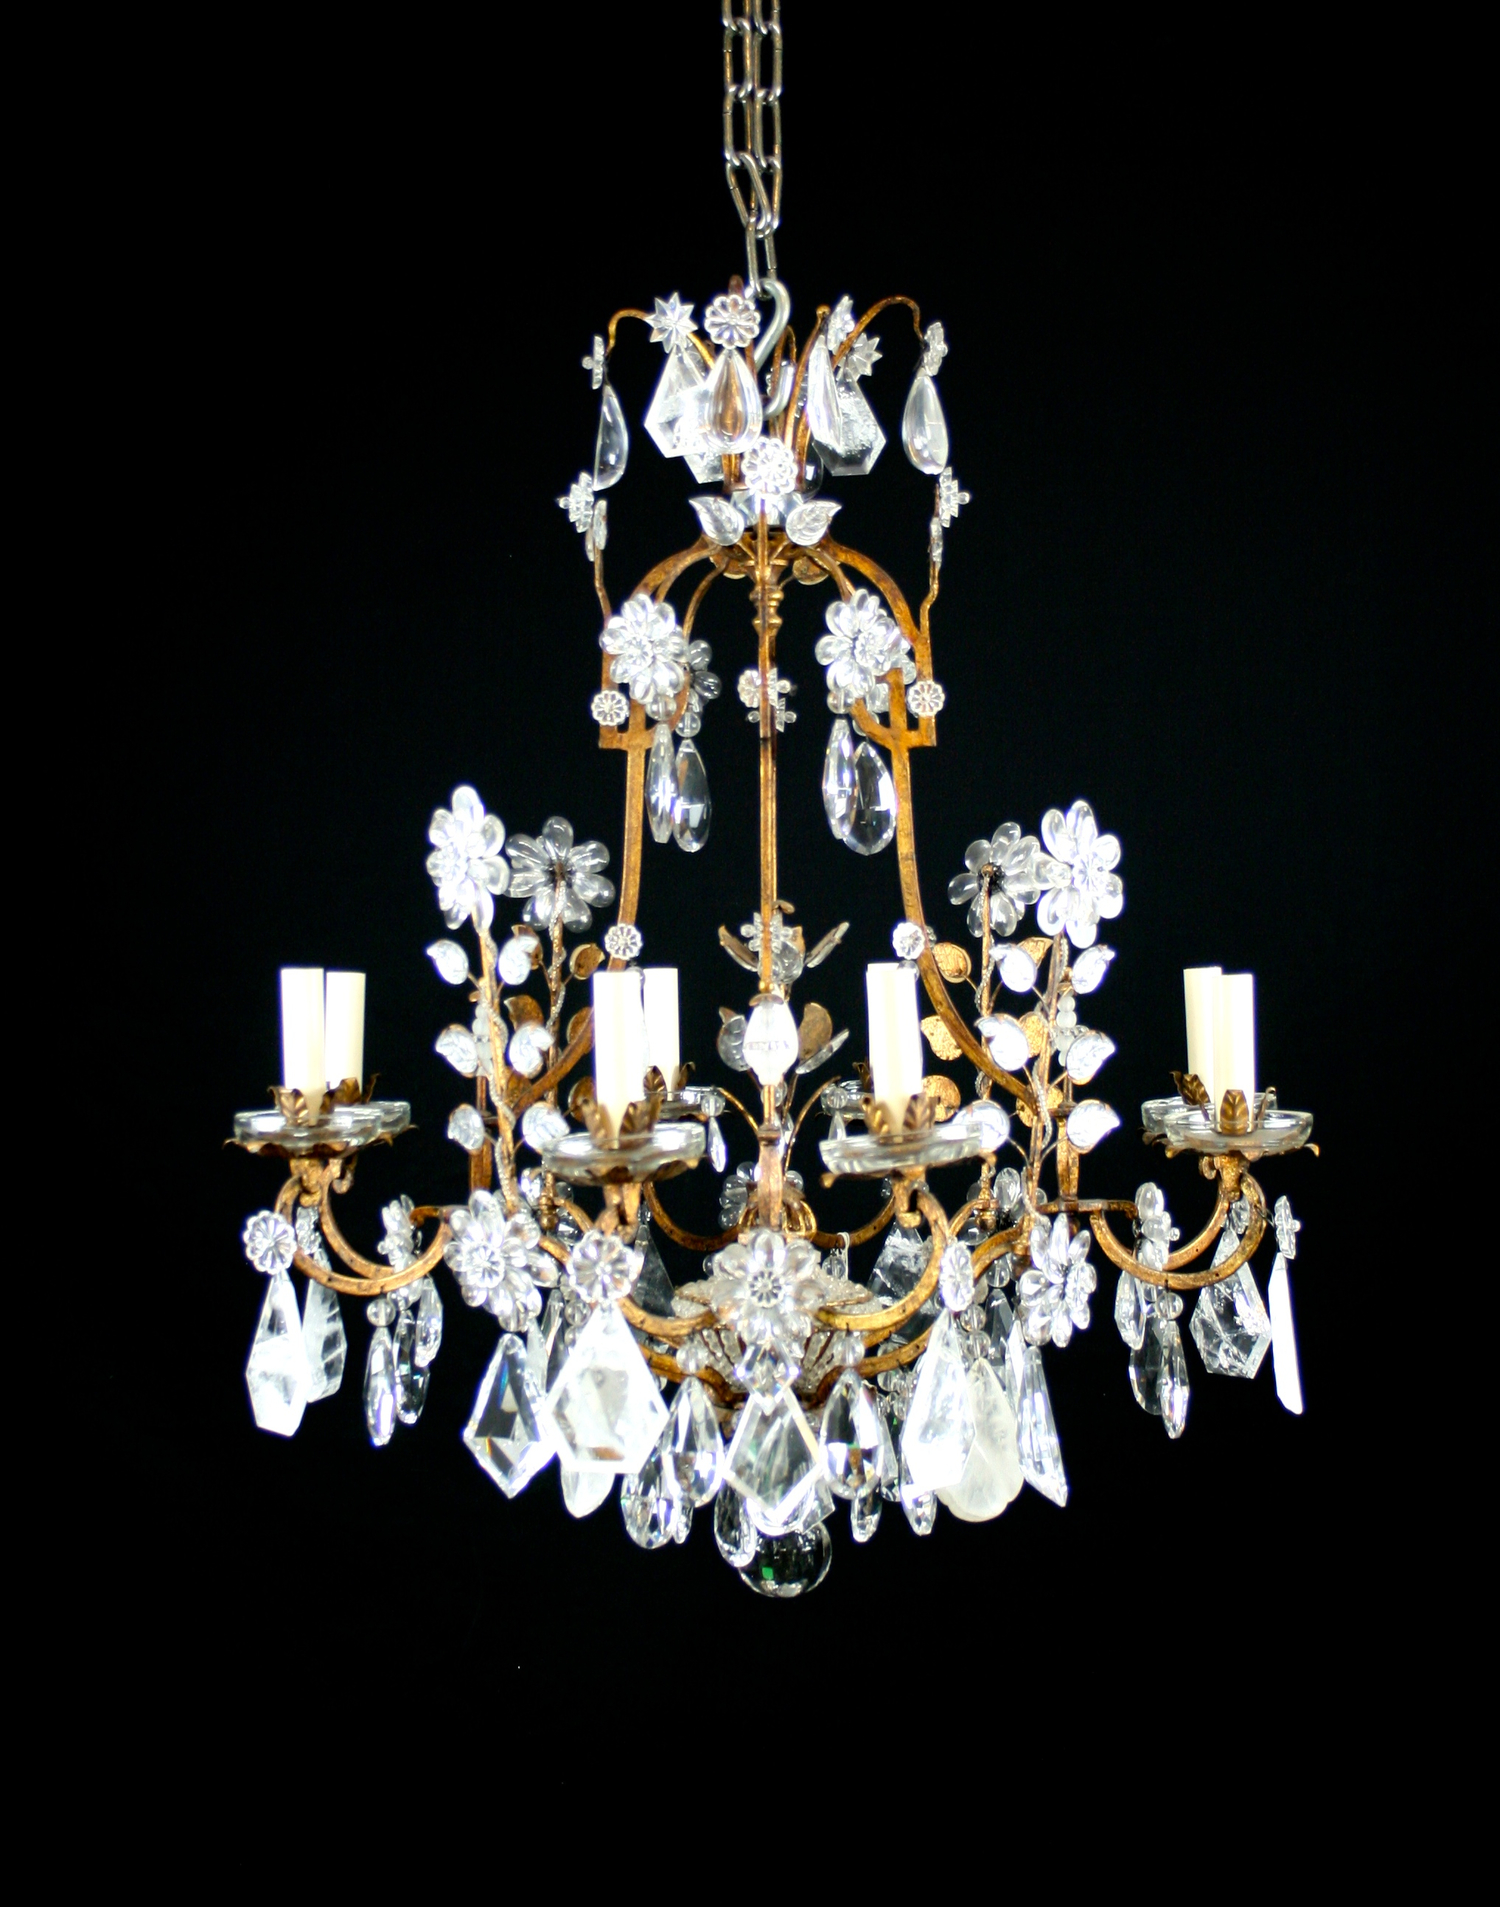 Nesle inc antique chandeliers and reproductions new yorkandeliers mozeypictures Image collections